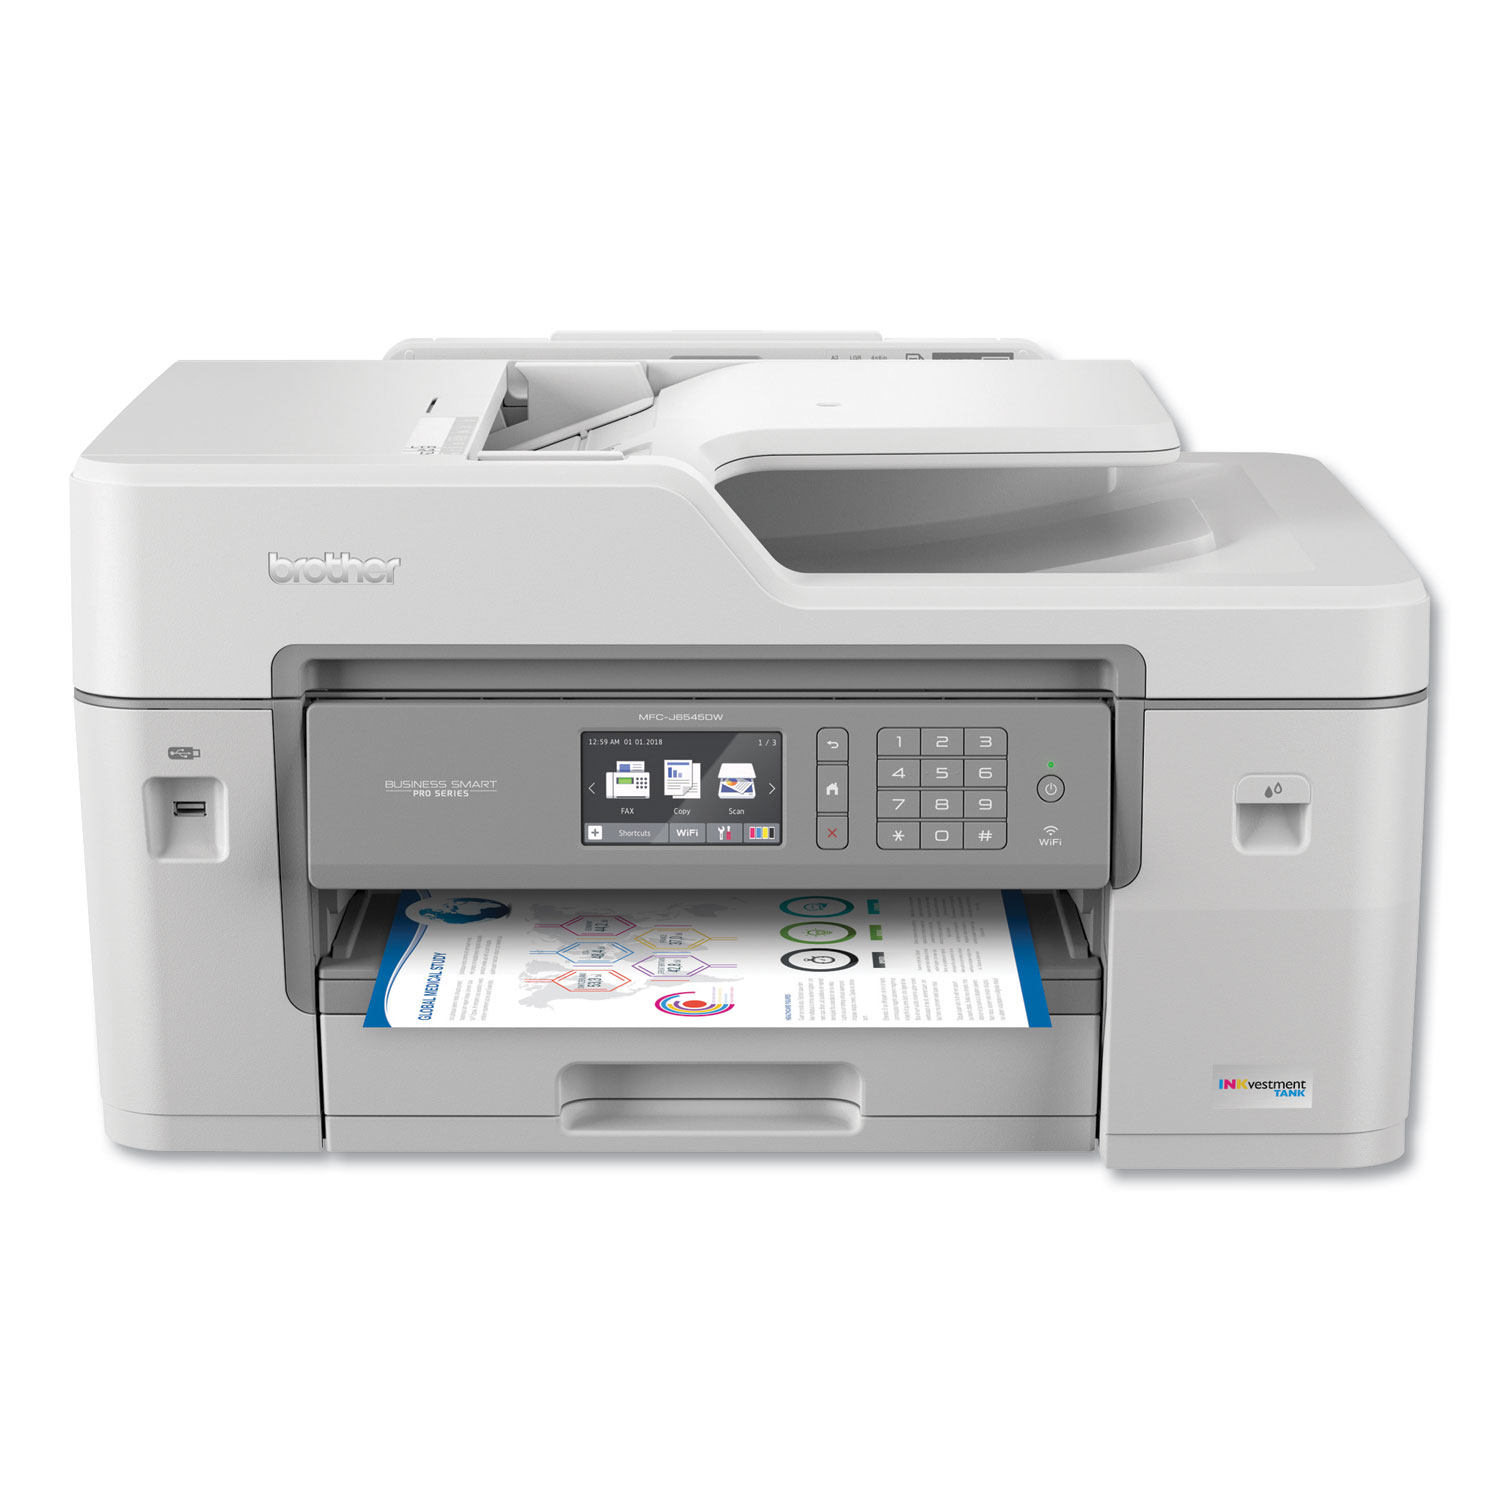 BRTMFCJ6545DW All-In-One Inkjet, Copy/Fax/Print/Scan